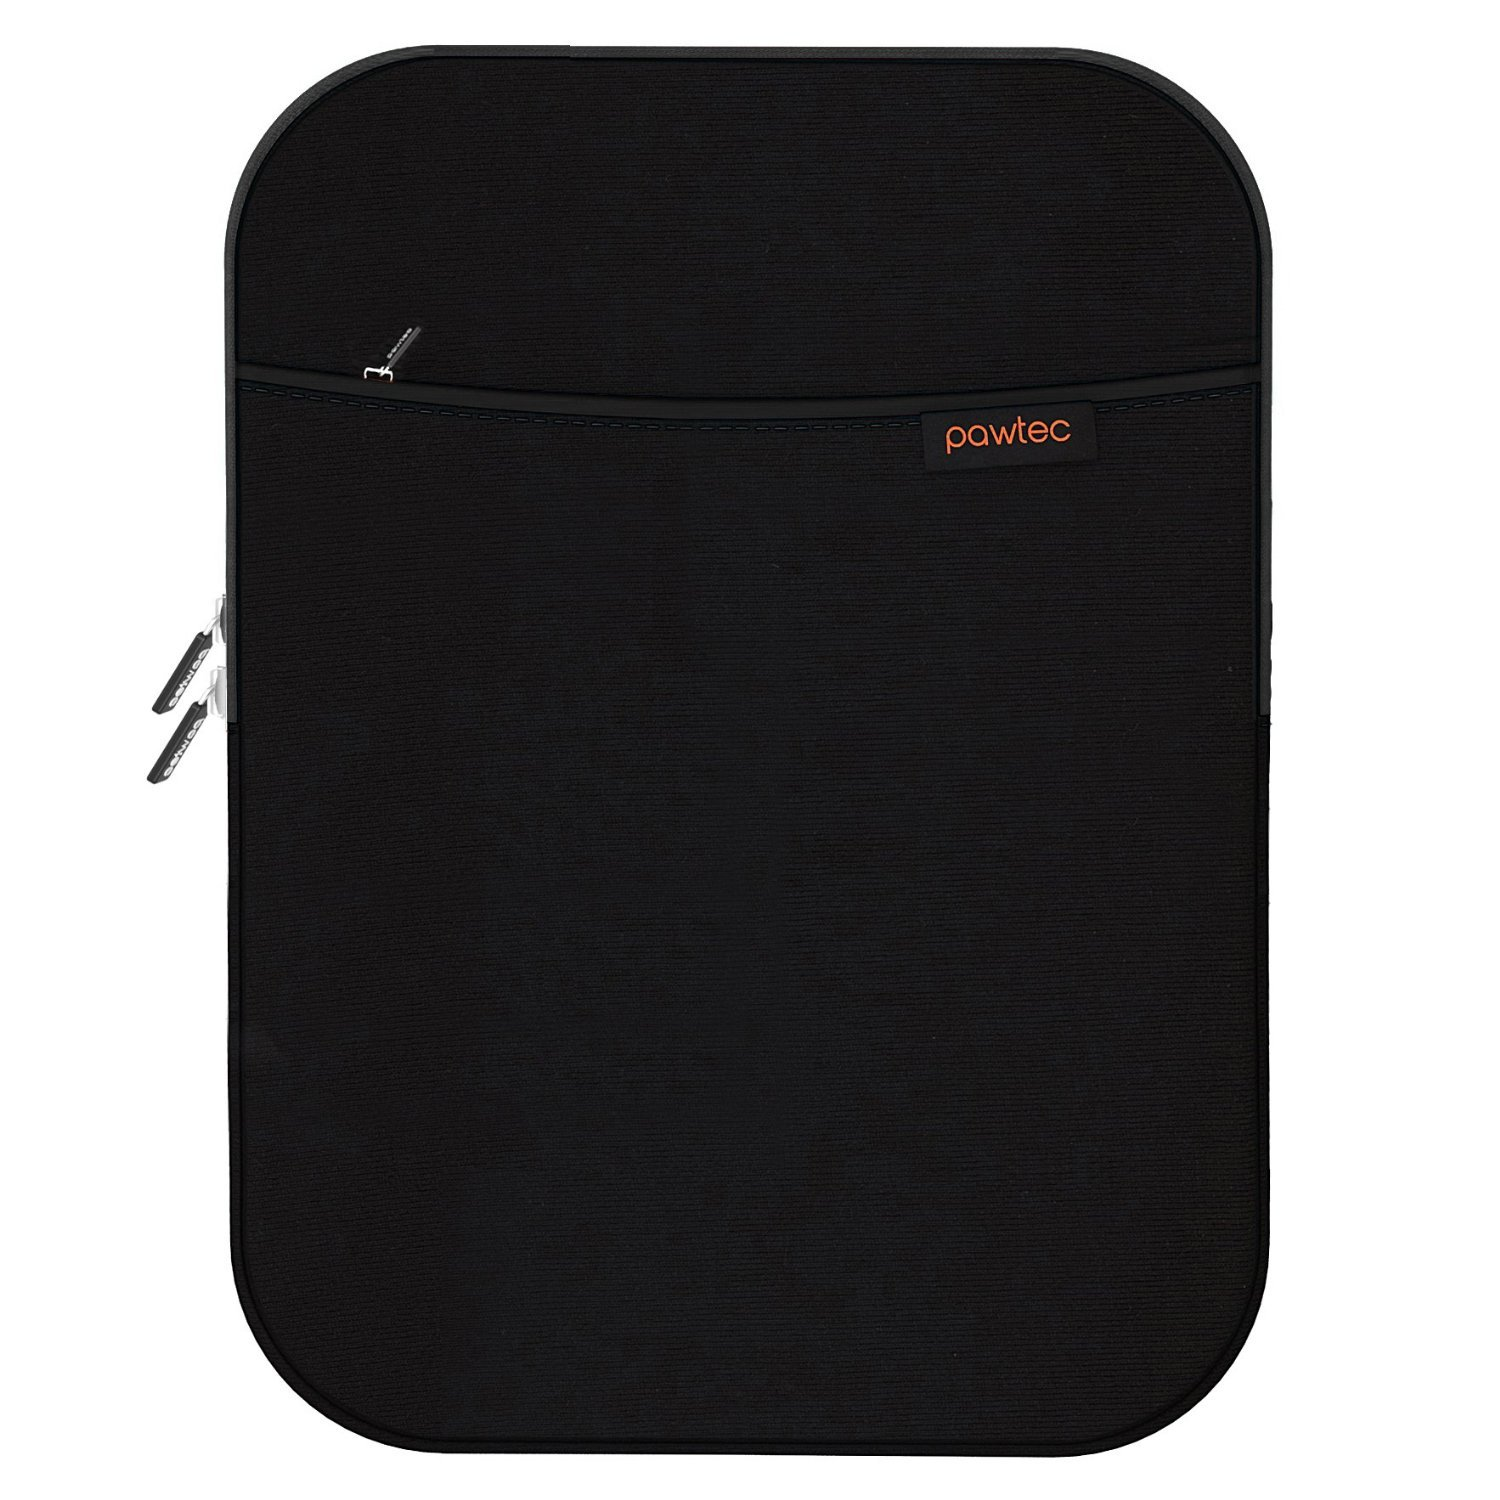 Pawtec Shockproof Neoprene Protective Storage Carrying Sleeve Case - Compatible with Apple 12.9 Inch iPad Pro Retina Tablet - with Extra Storage Pocket for Accessories and Wall Charger (Black) by Pawtec